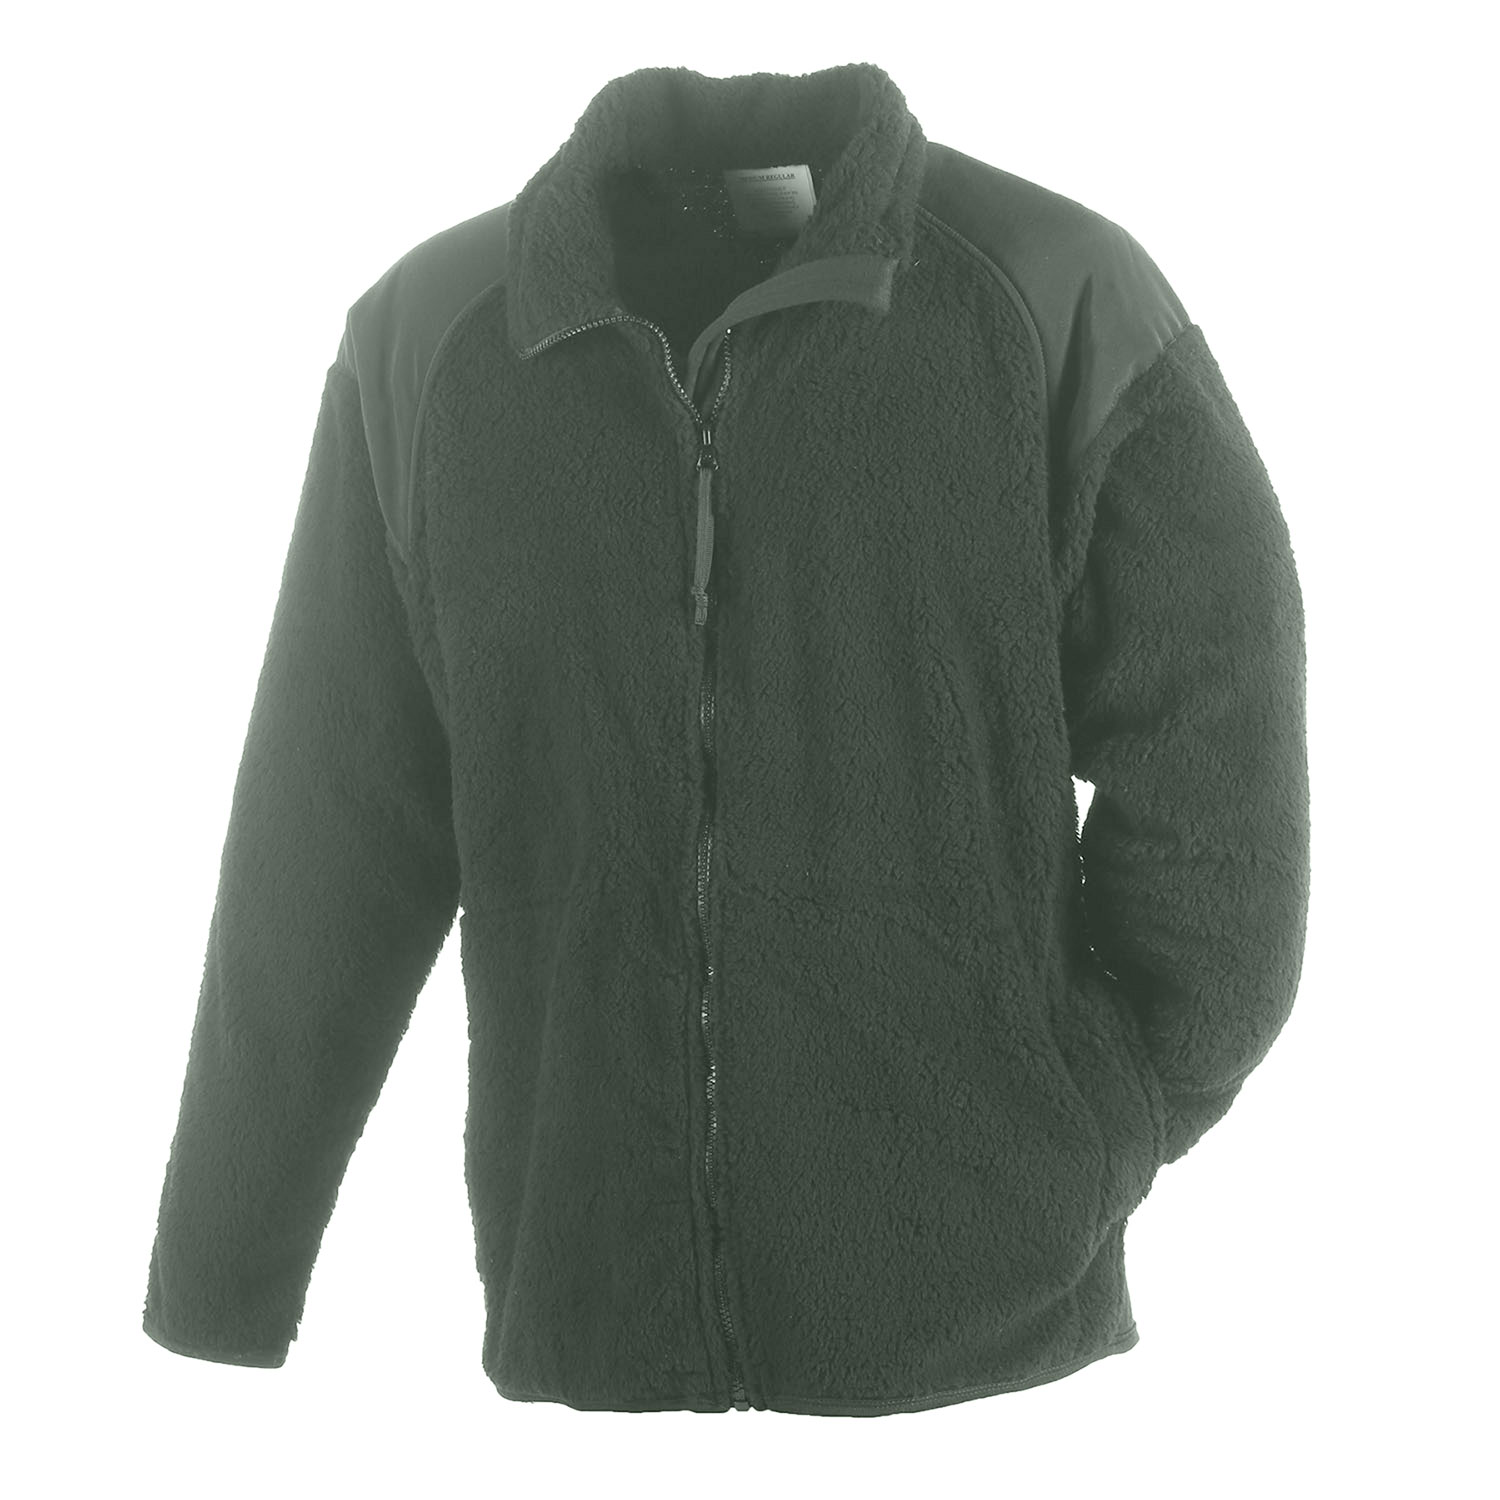 Tru-Spec Cold Weather Fleece Jacket